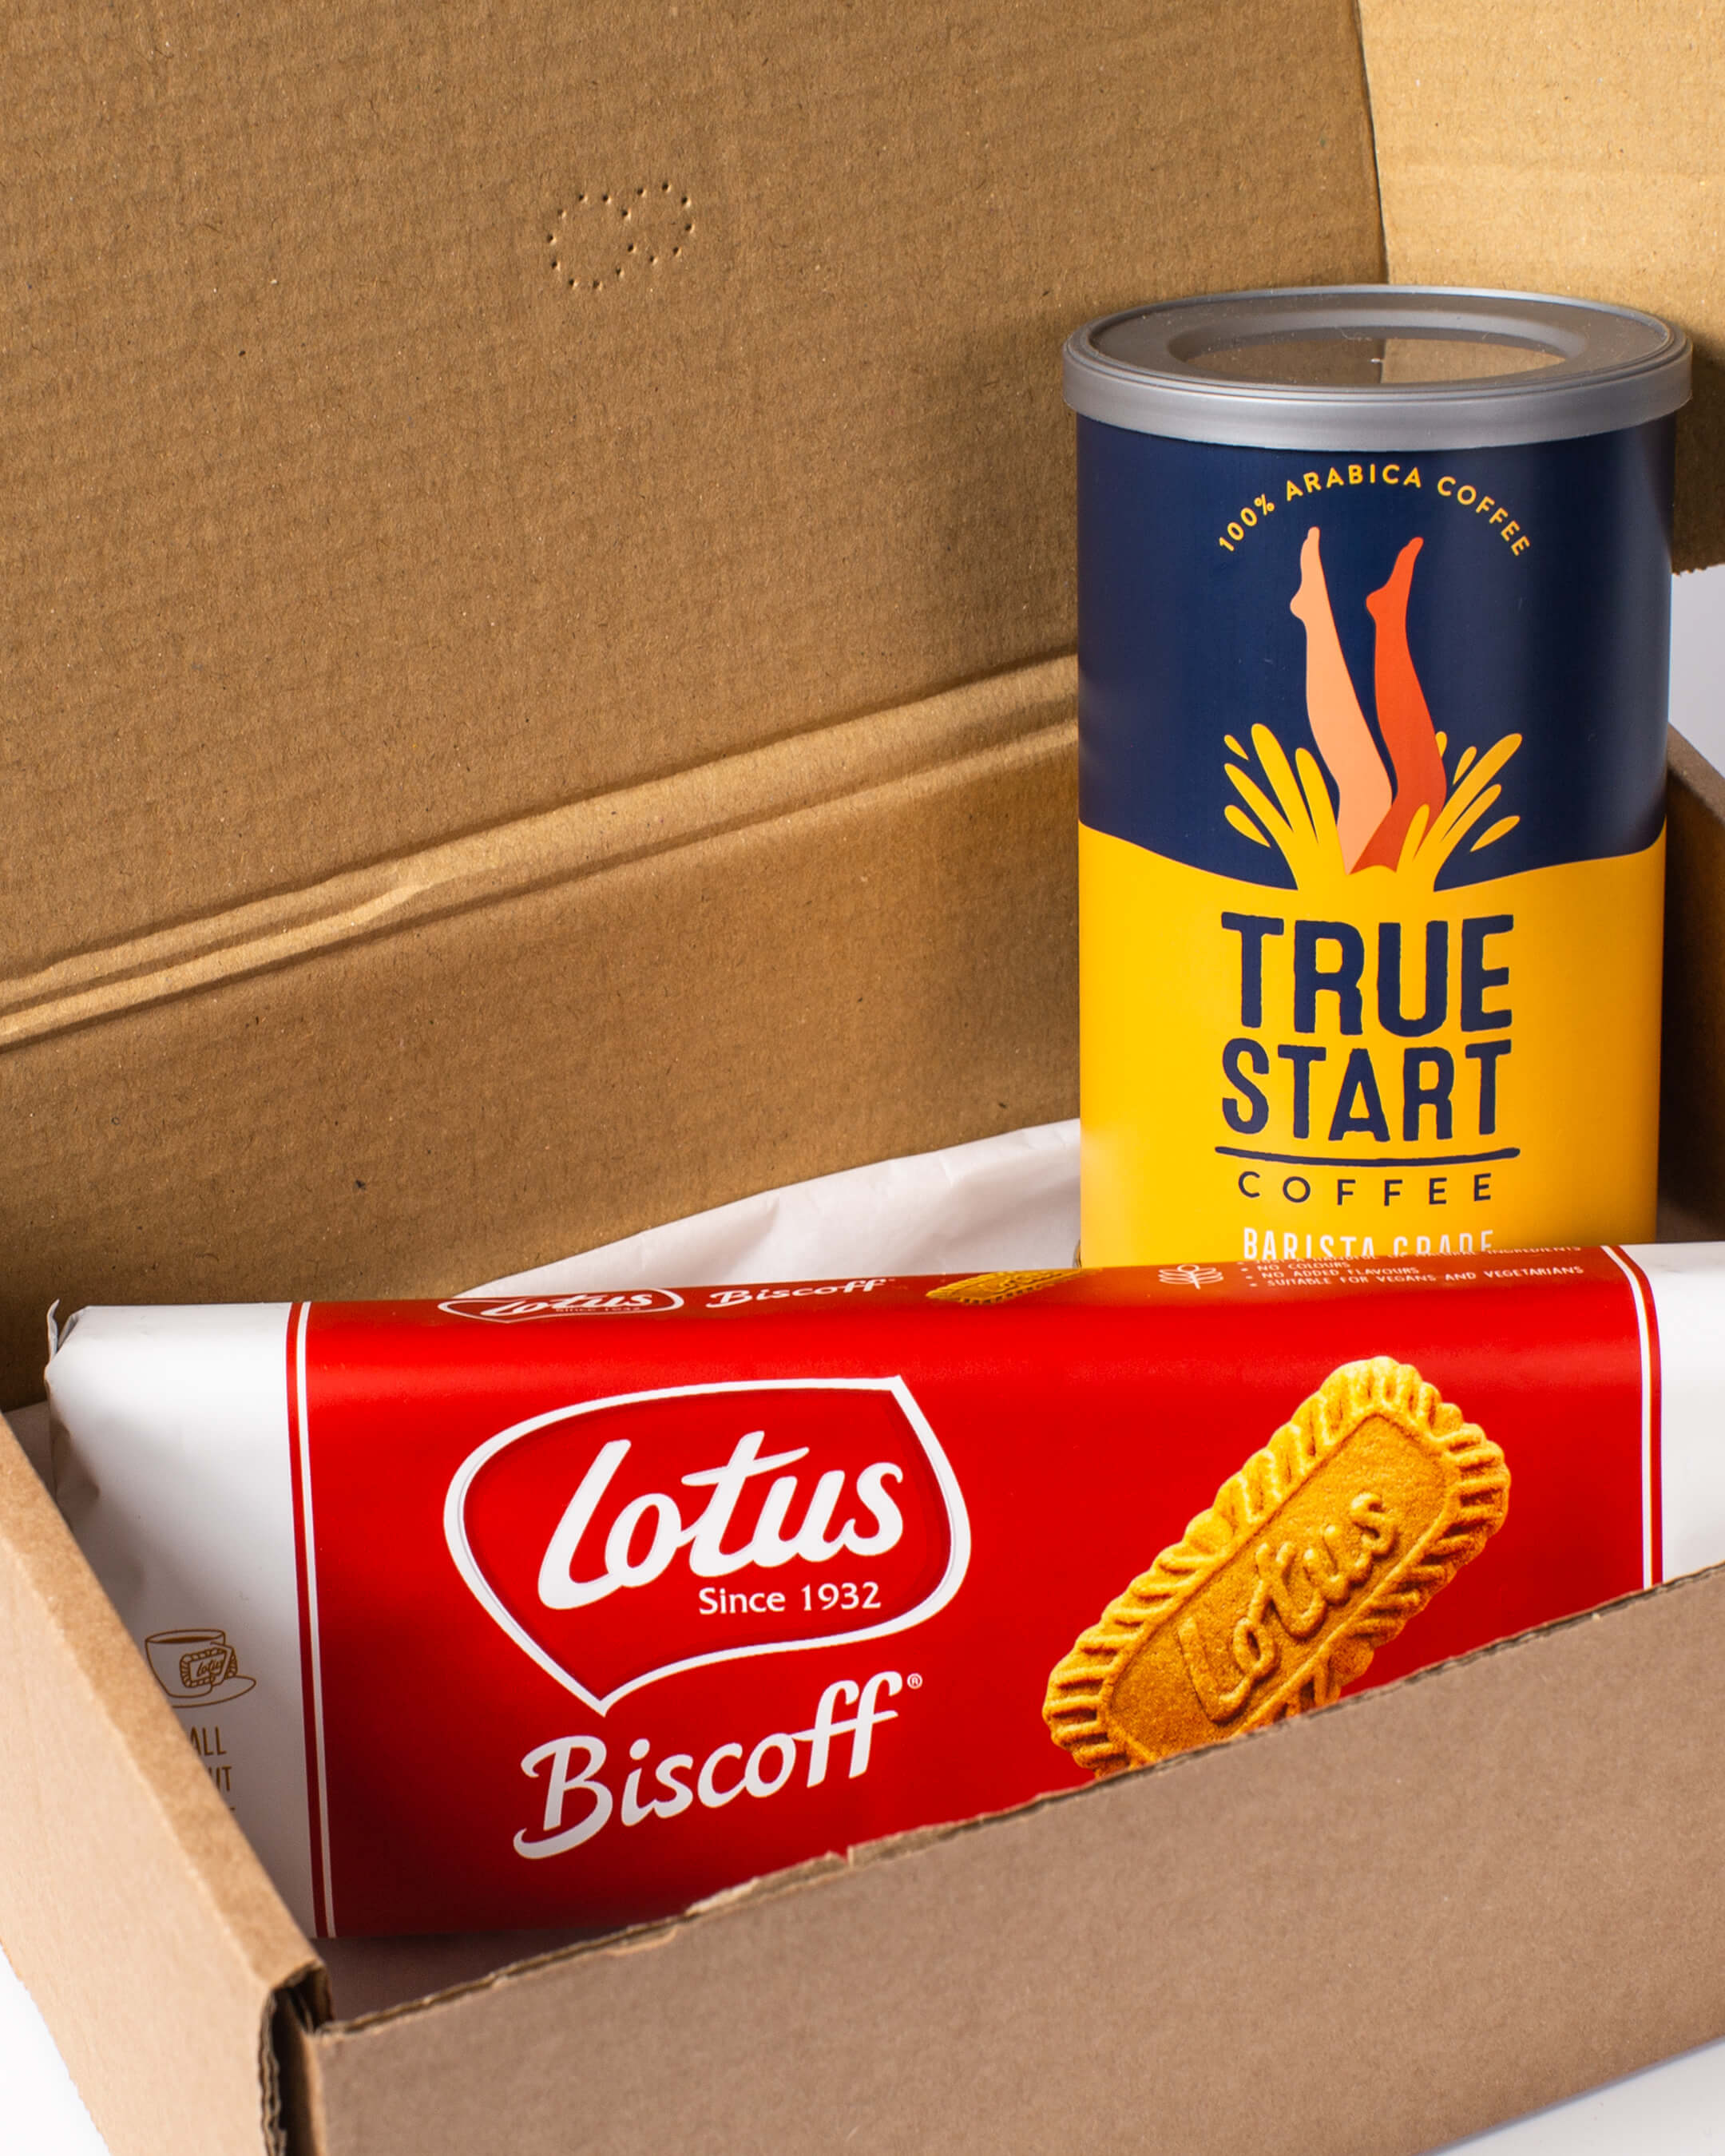 Inside the coffee & biscuits box: True Grade barista style coffee with Lotus Biscoff coffee biscuits